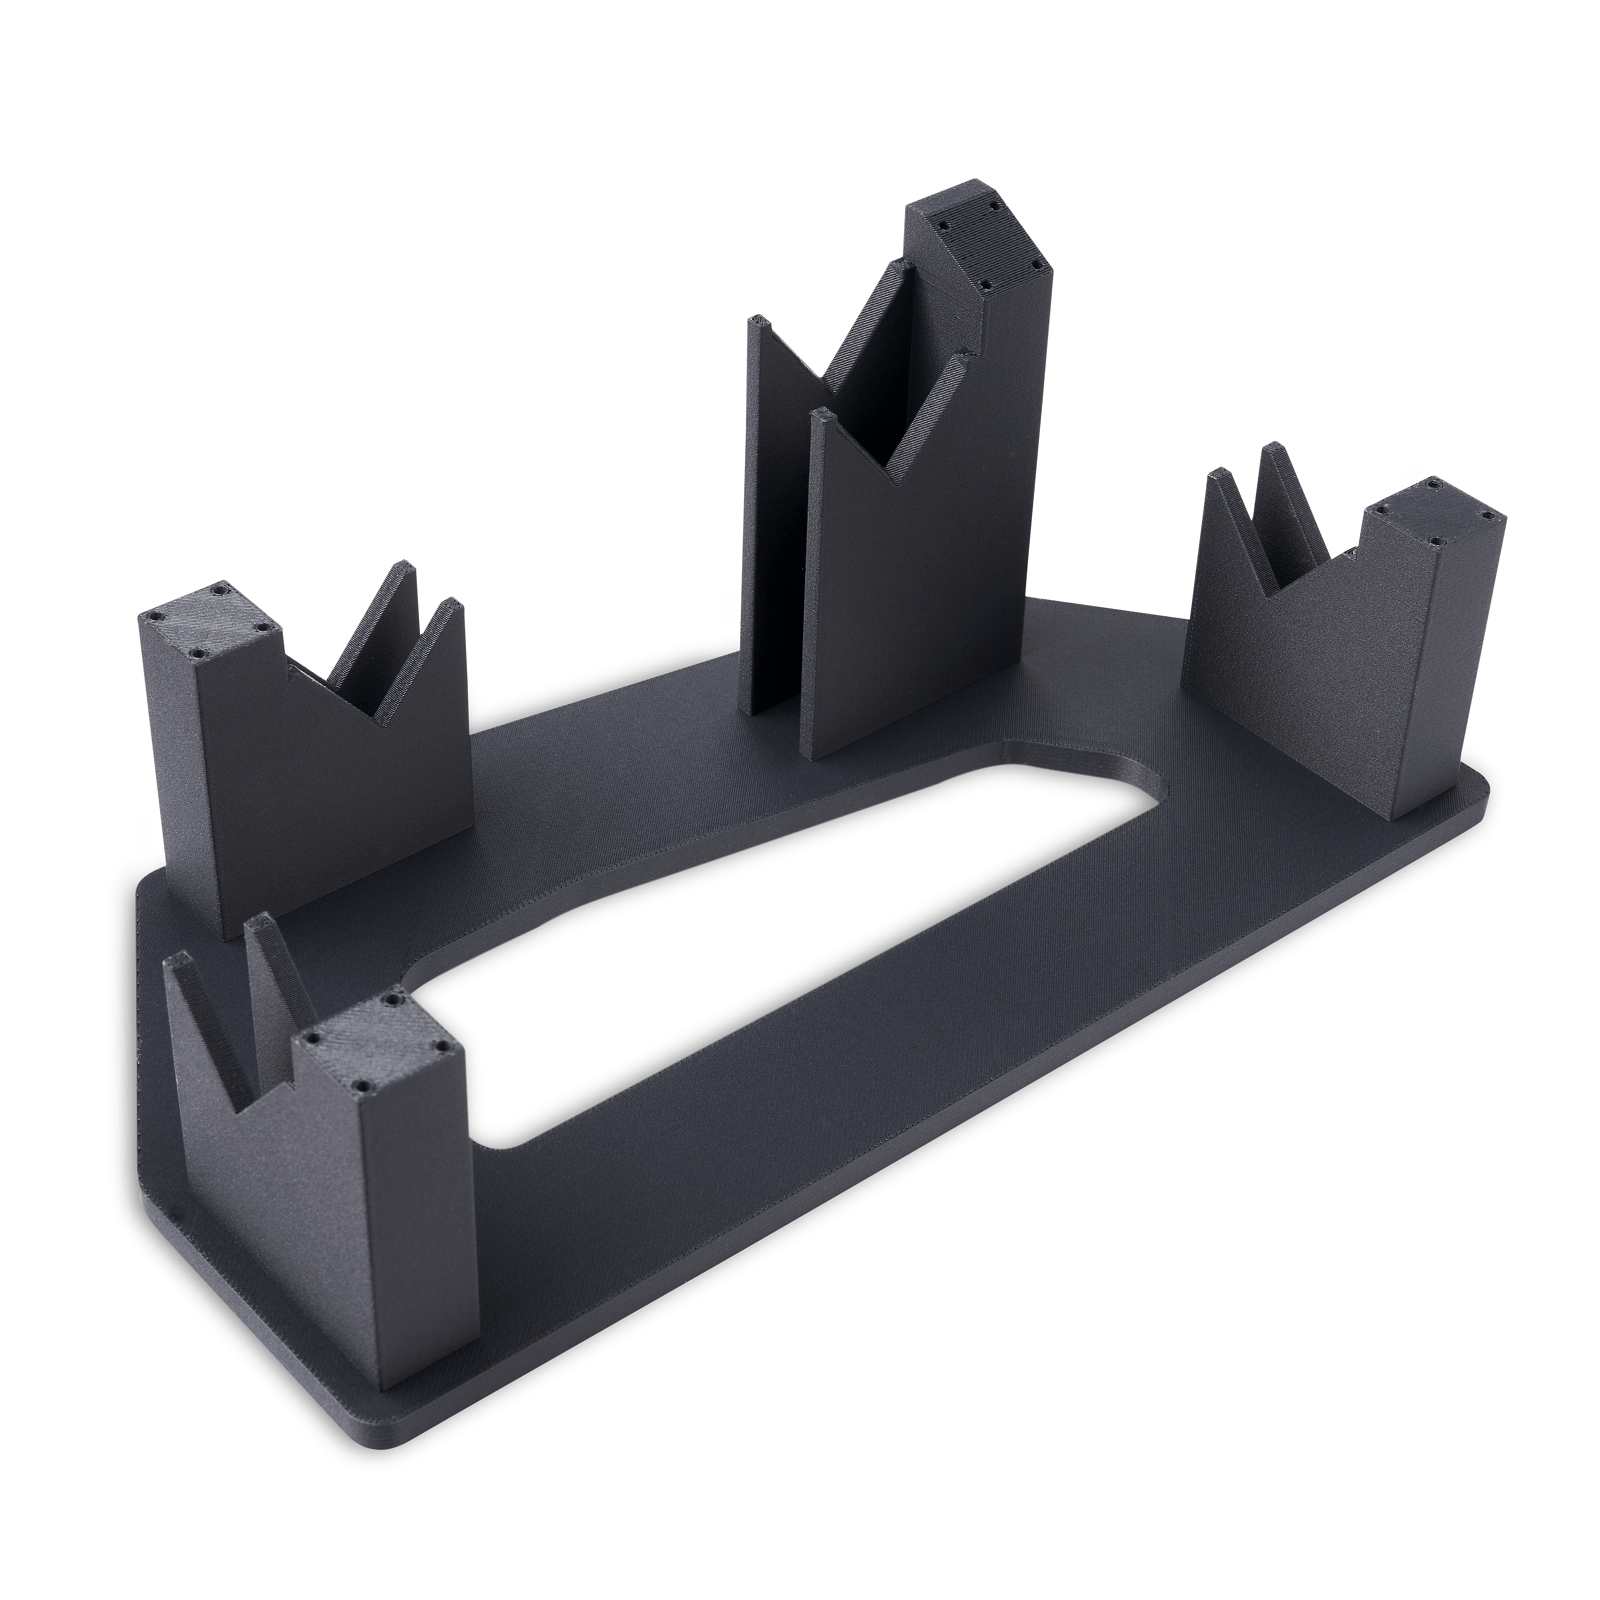 ABS-CF10 carbon fiber material released for Stratasys F123 Series